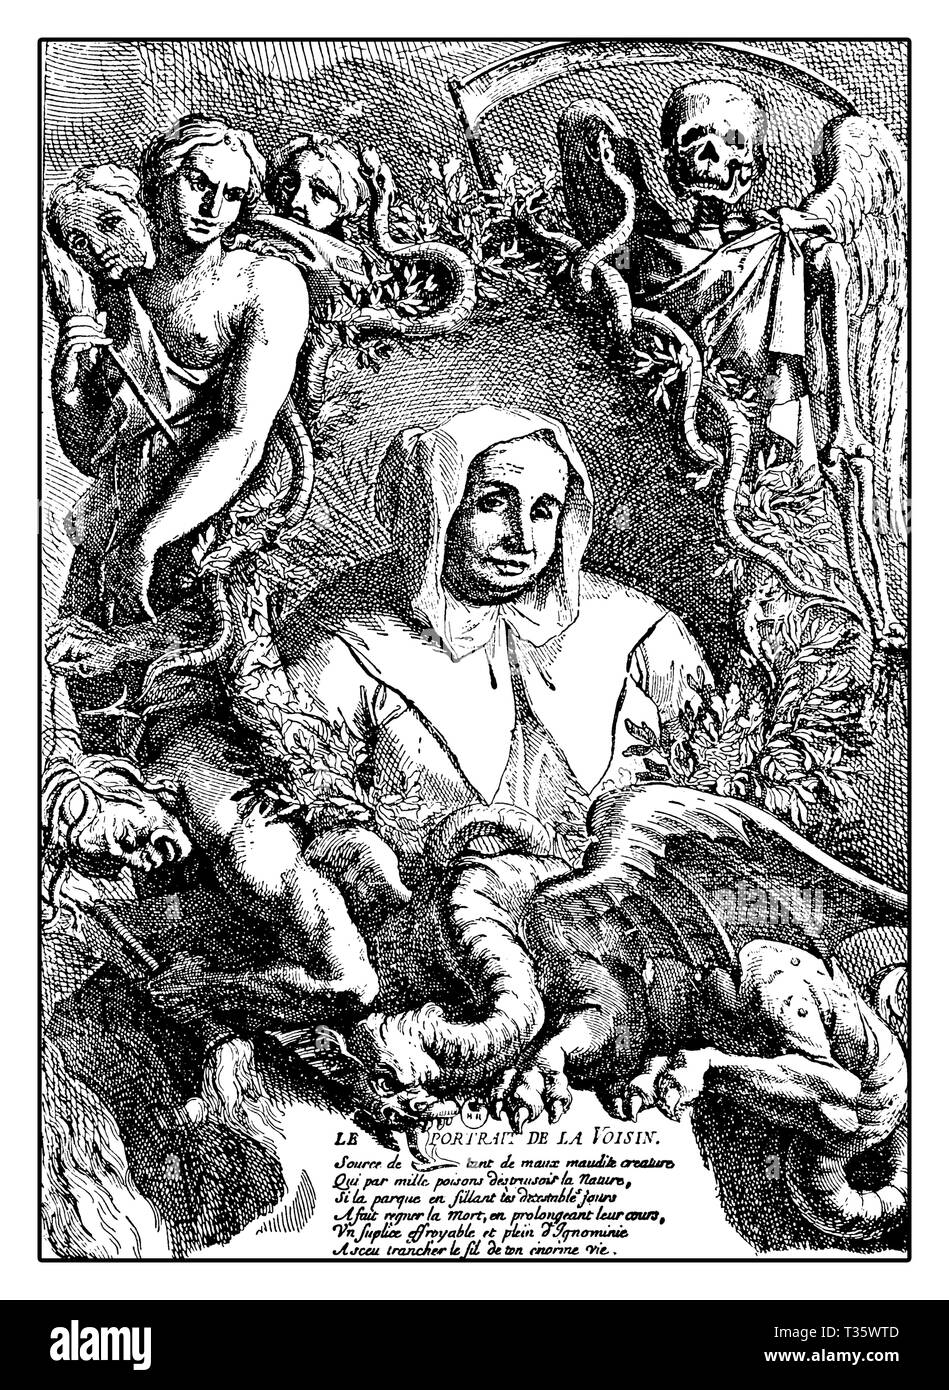 Allegorical portrait with winged devil of Catherine Monvoisin well renowned French poisoner of the XVII century,fortune teller, midwife, abortions provider and professional sorcery executed for witchcraft by burning at stake in 1680 Stock Photo